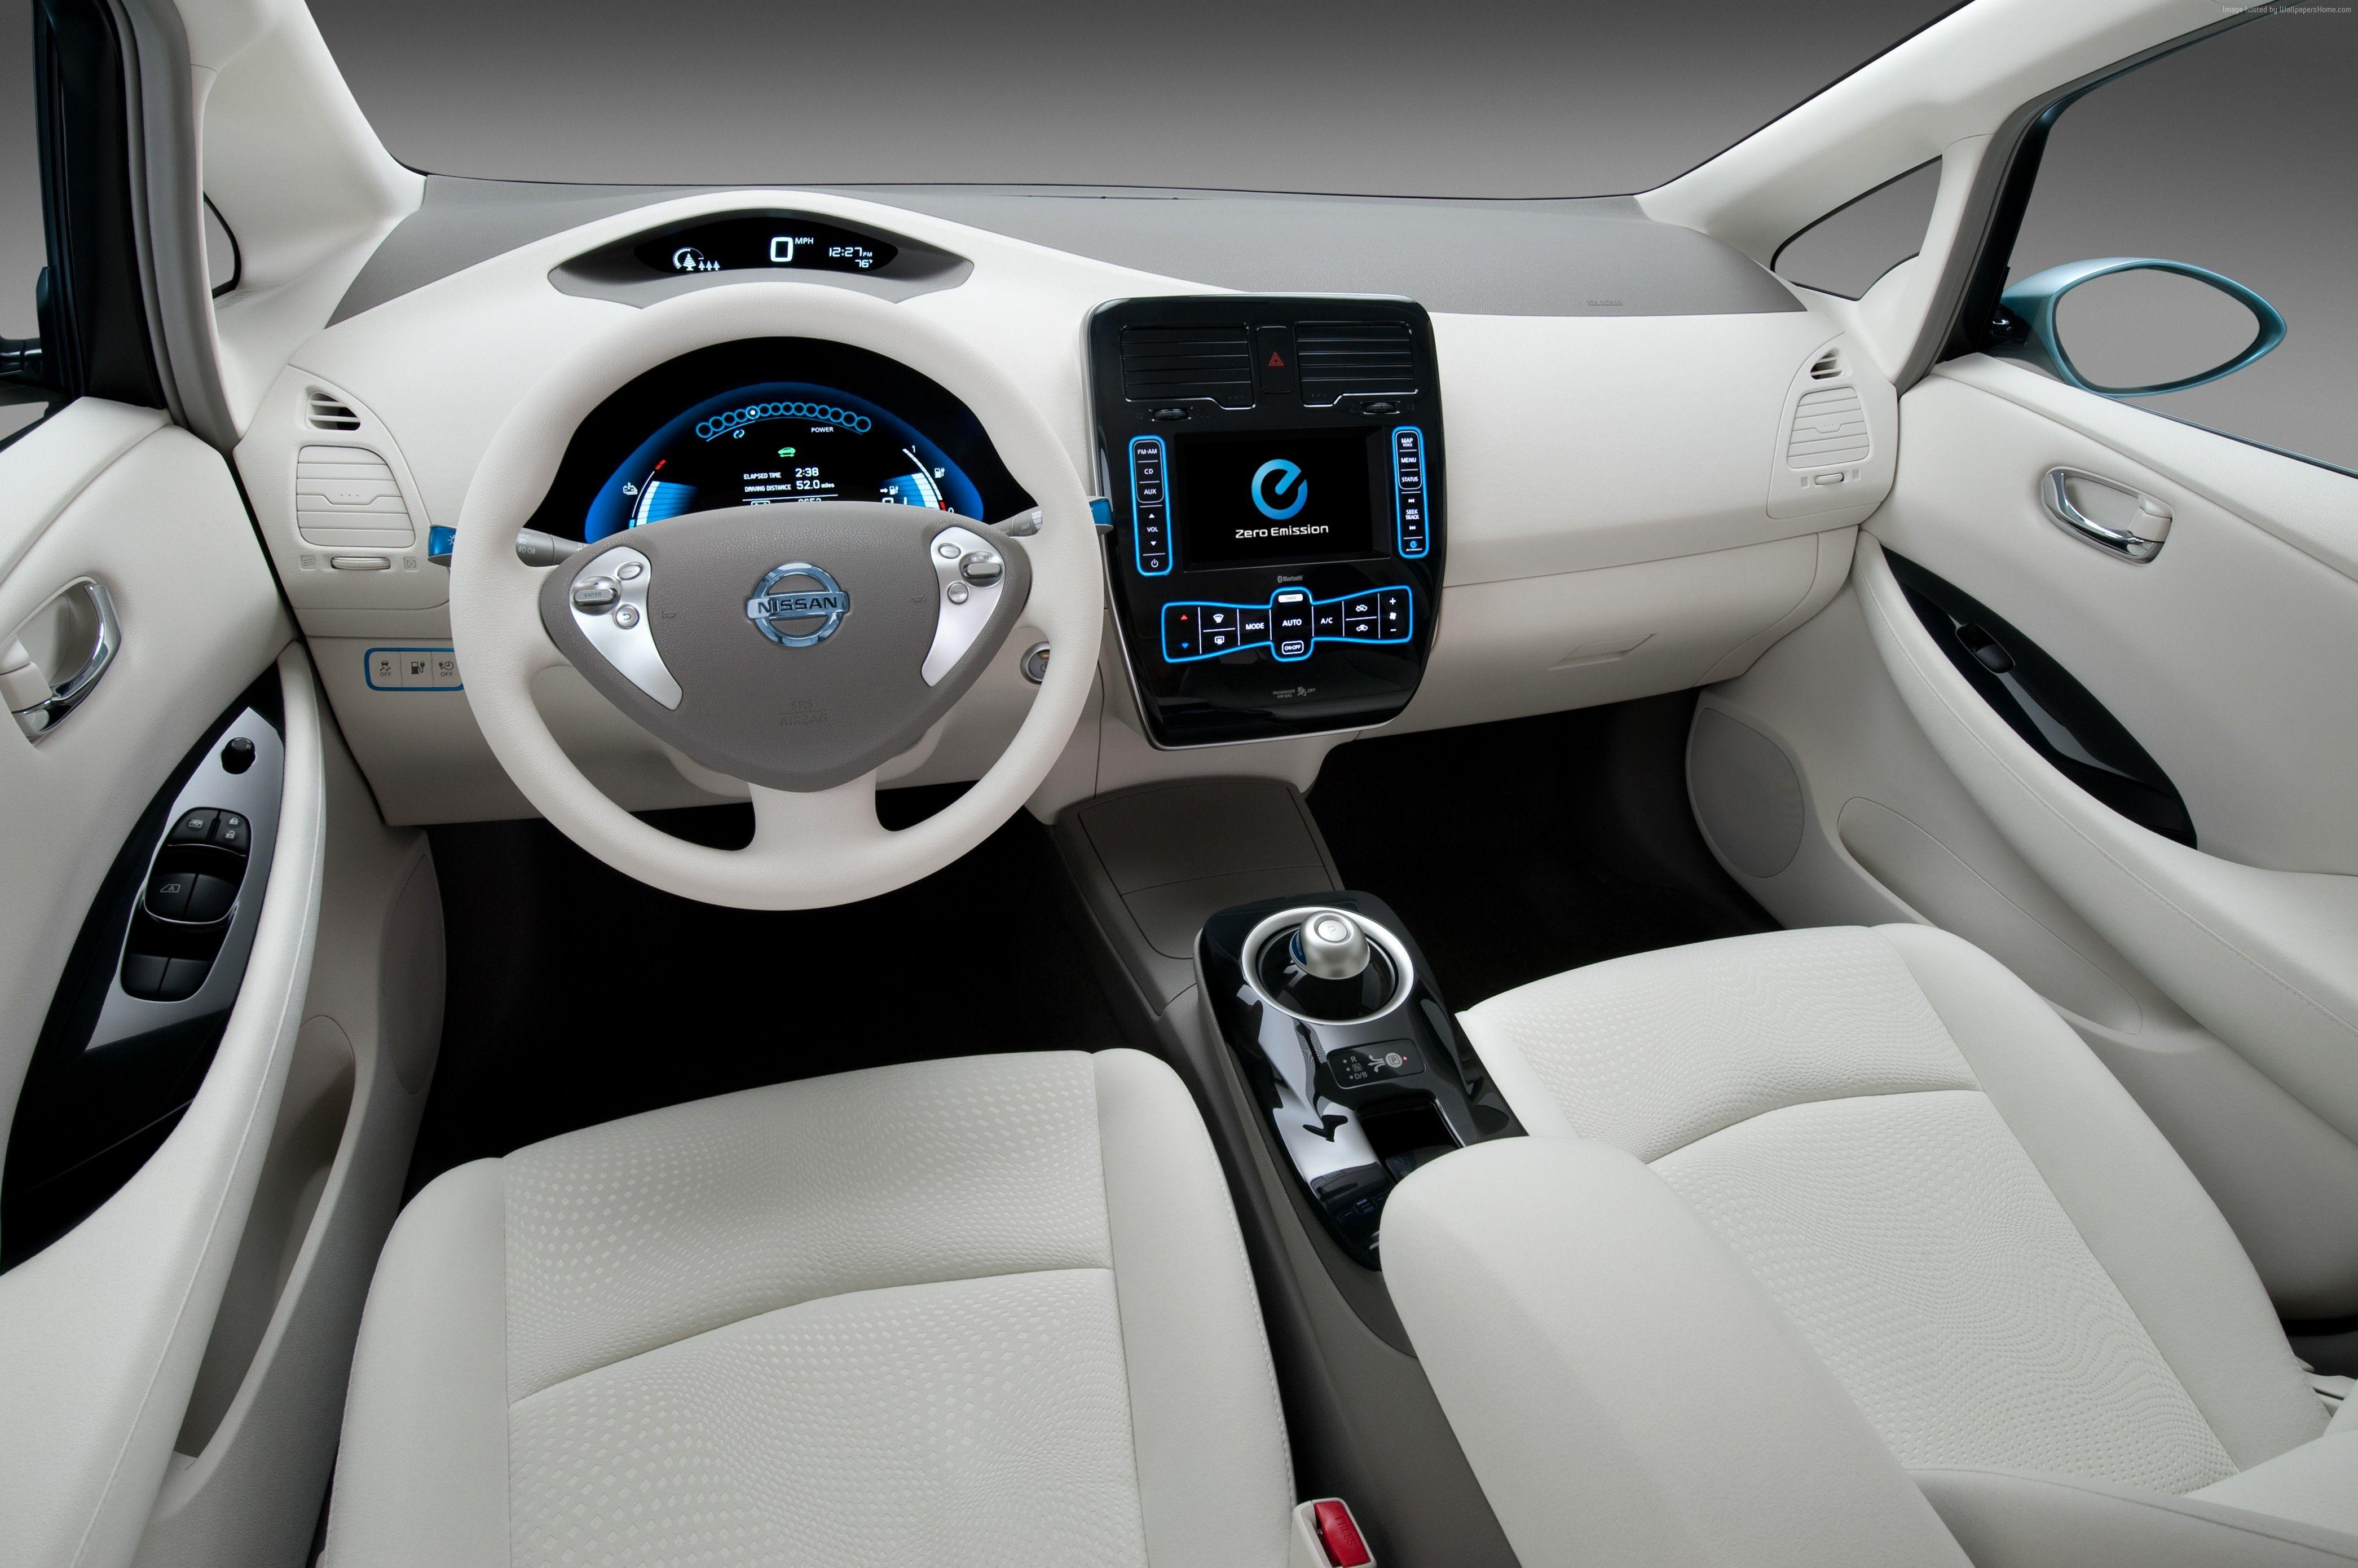 Wallpaper Nissan LEAF, electric cars, Nissan, interior, city cars ...